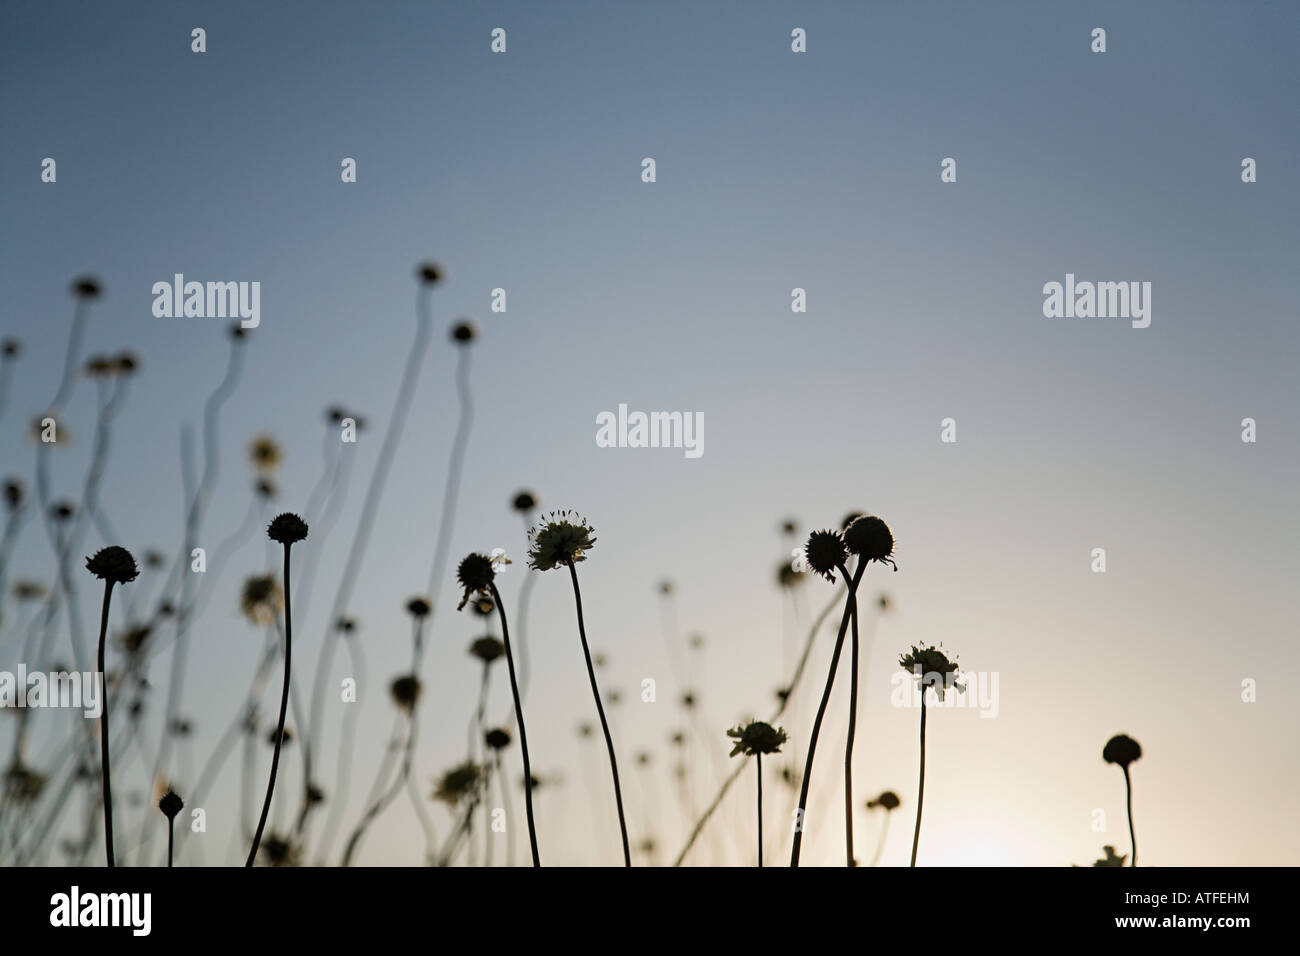 Silhouetted plants at sunset Stock Photo